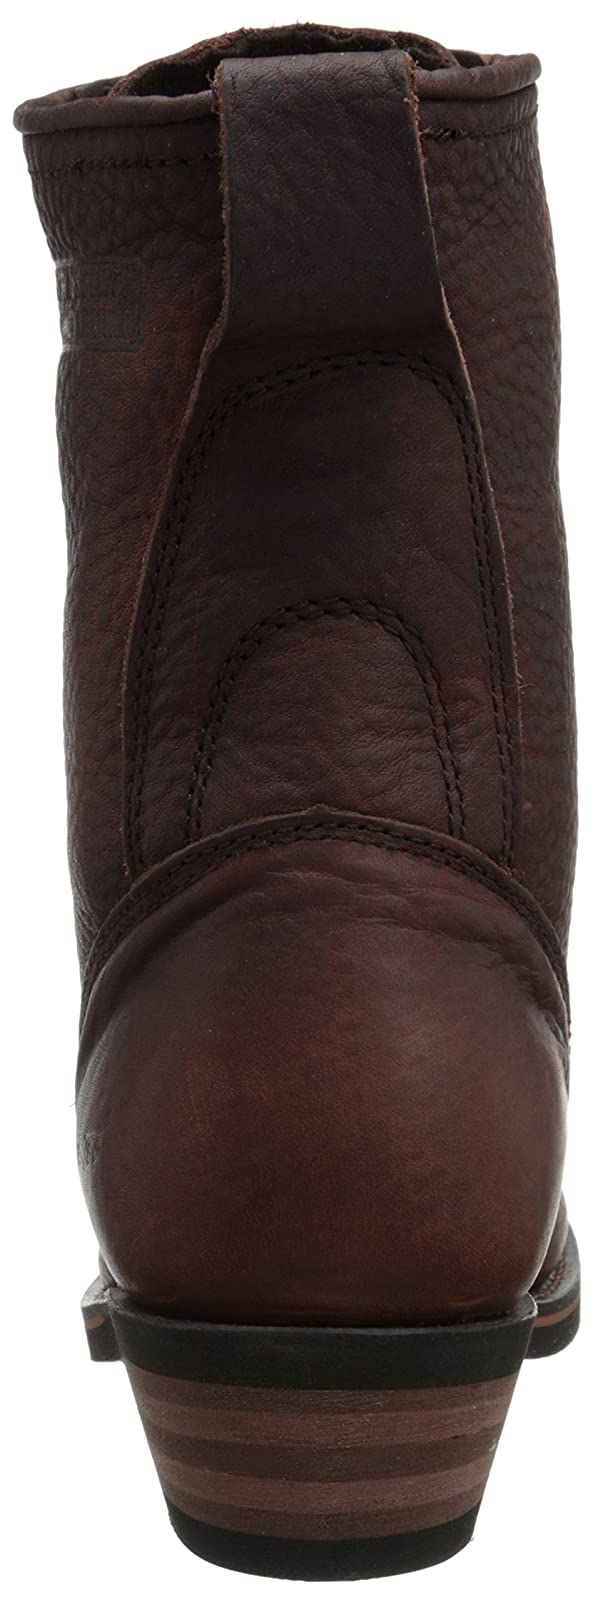 Adtec Men's 9 Inch Packer-M Boot Chestnut 9 M US - 2